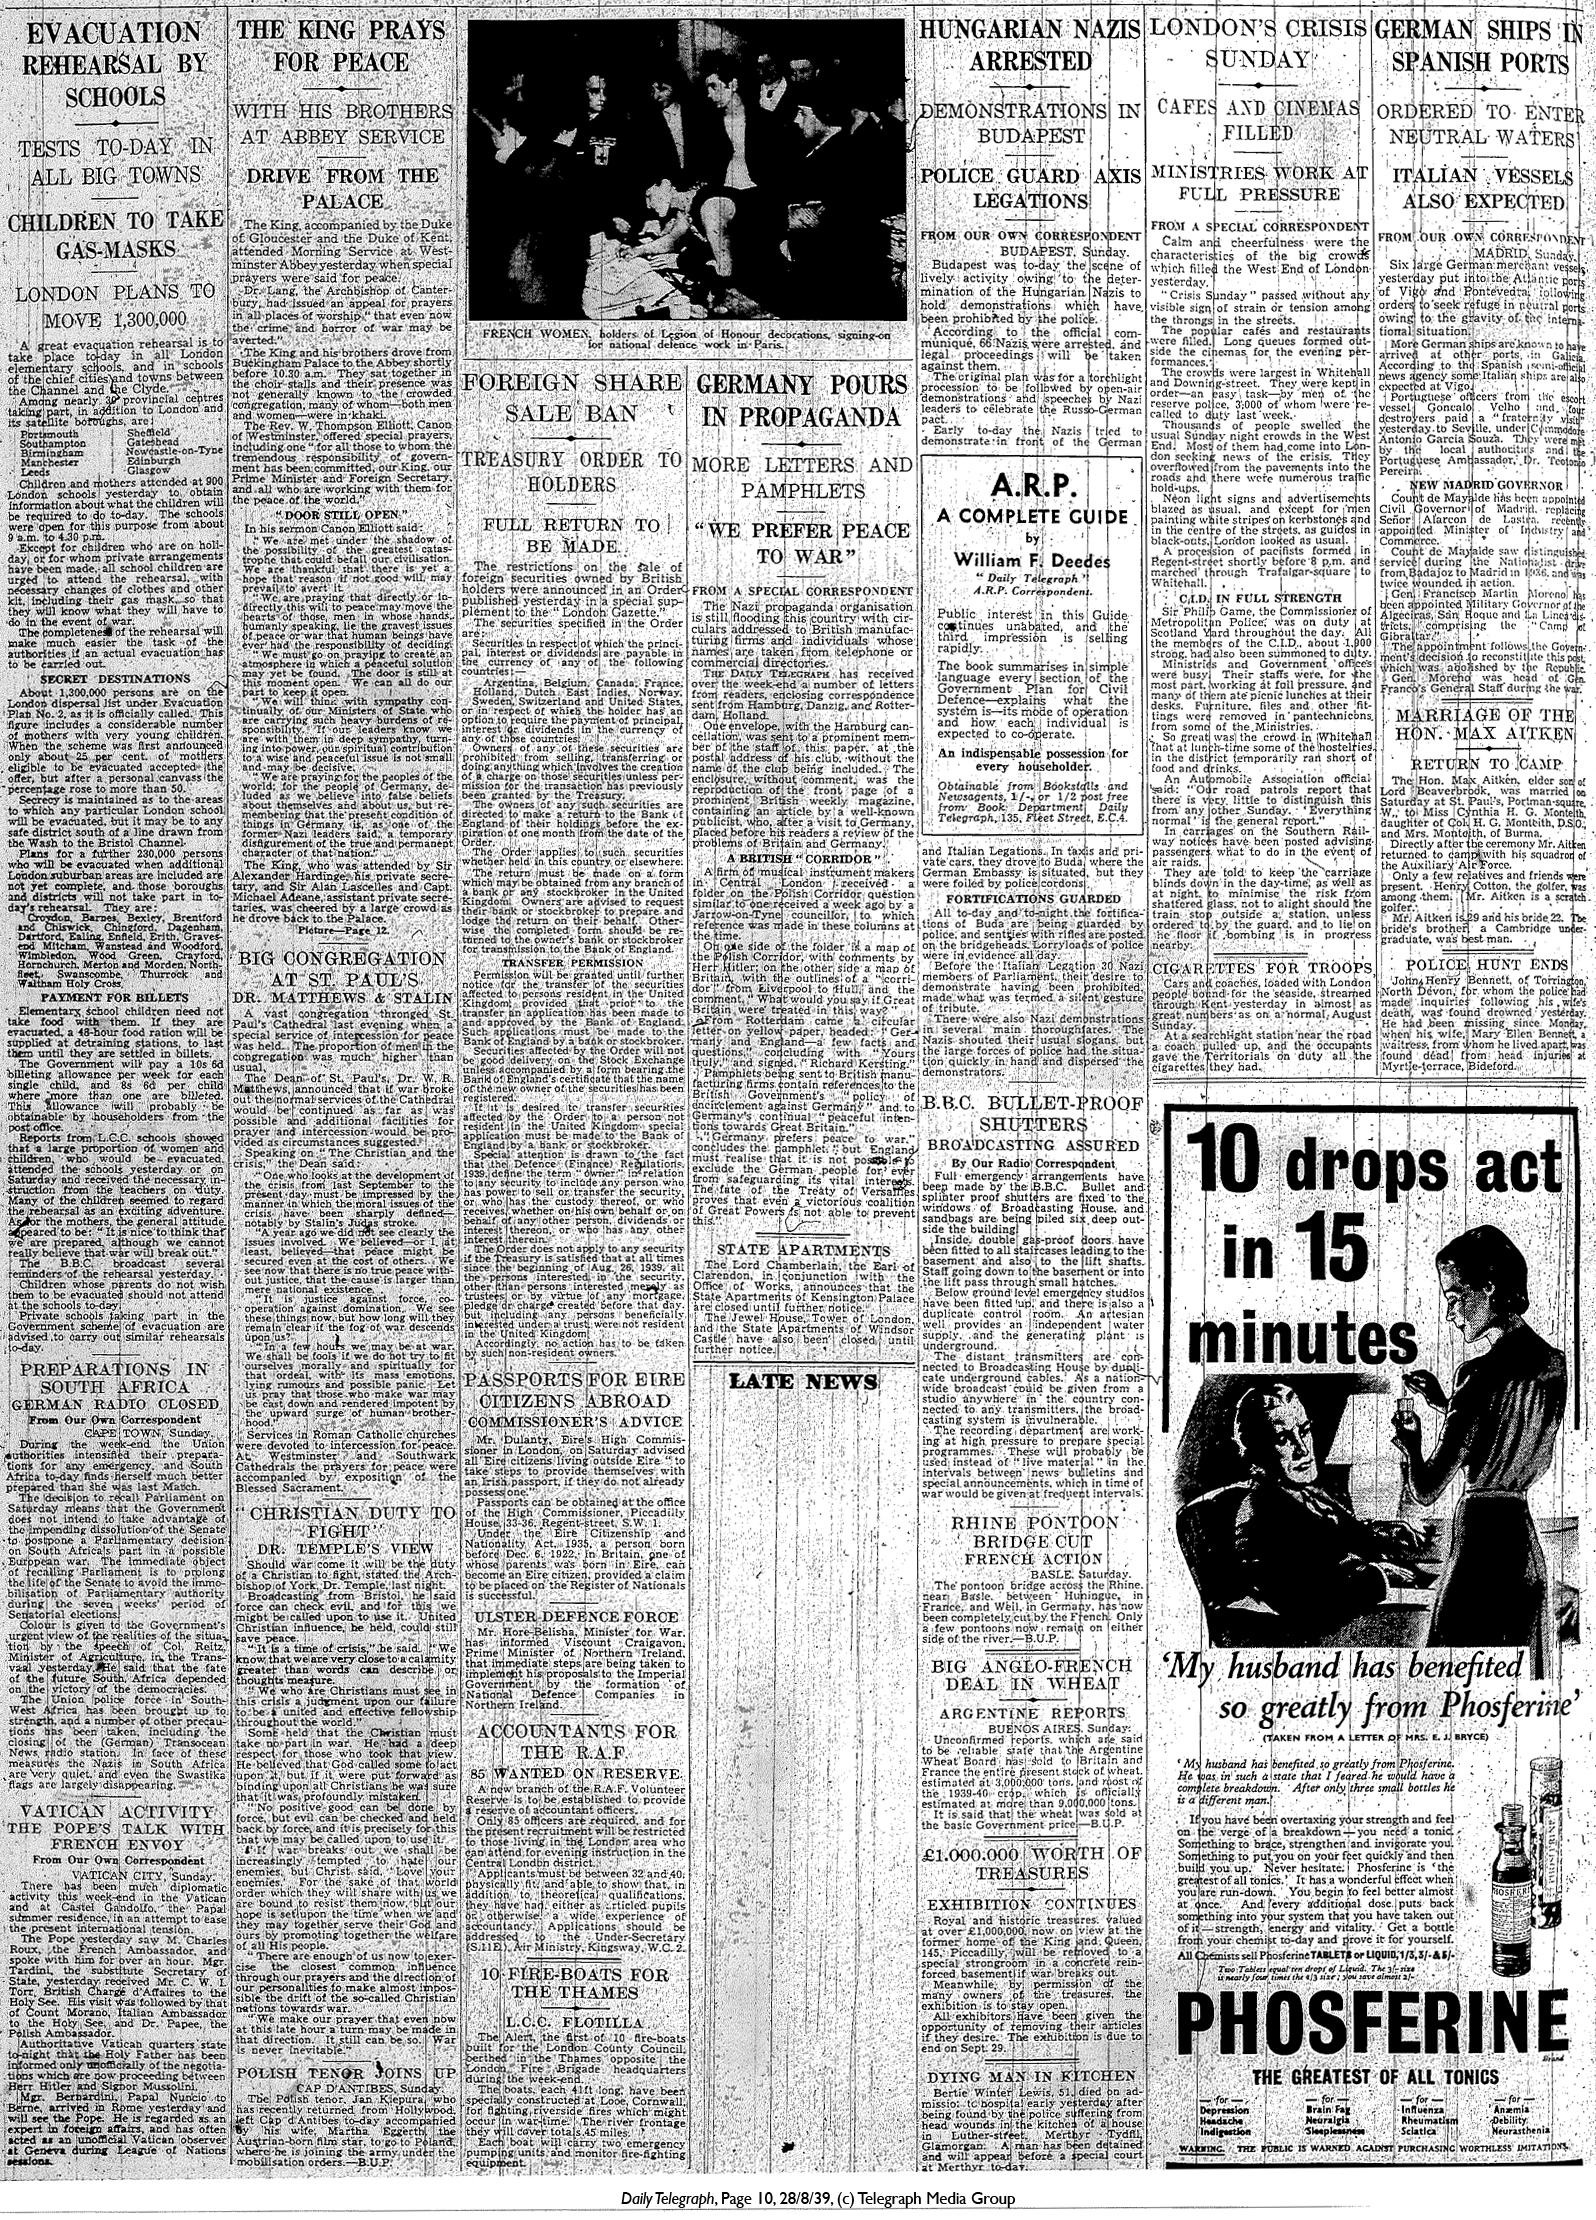 Daily Telegraph 28-8-39 Page 10